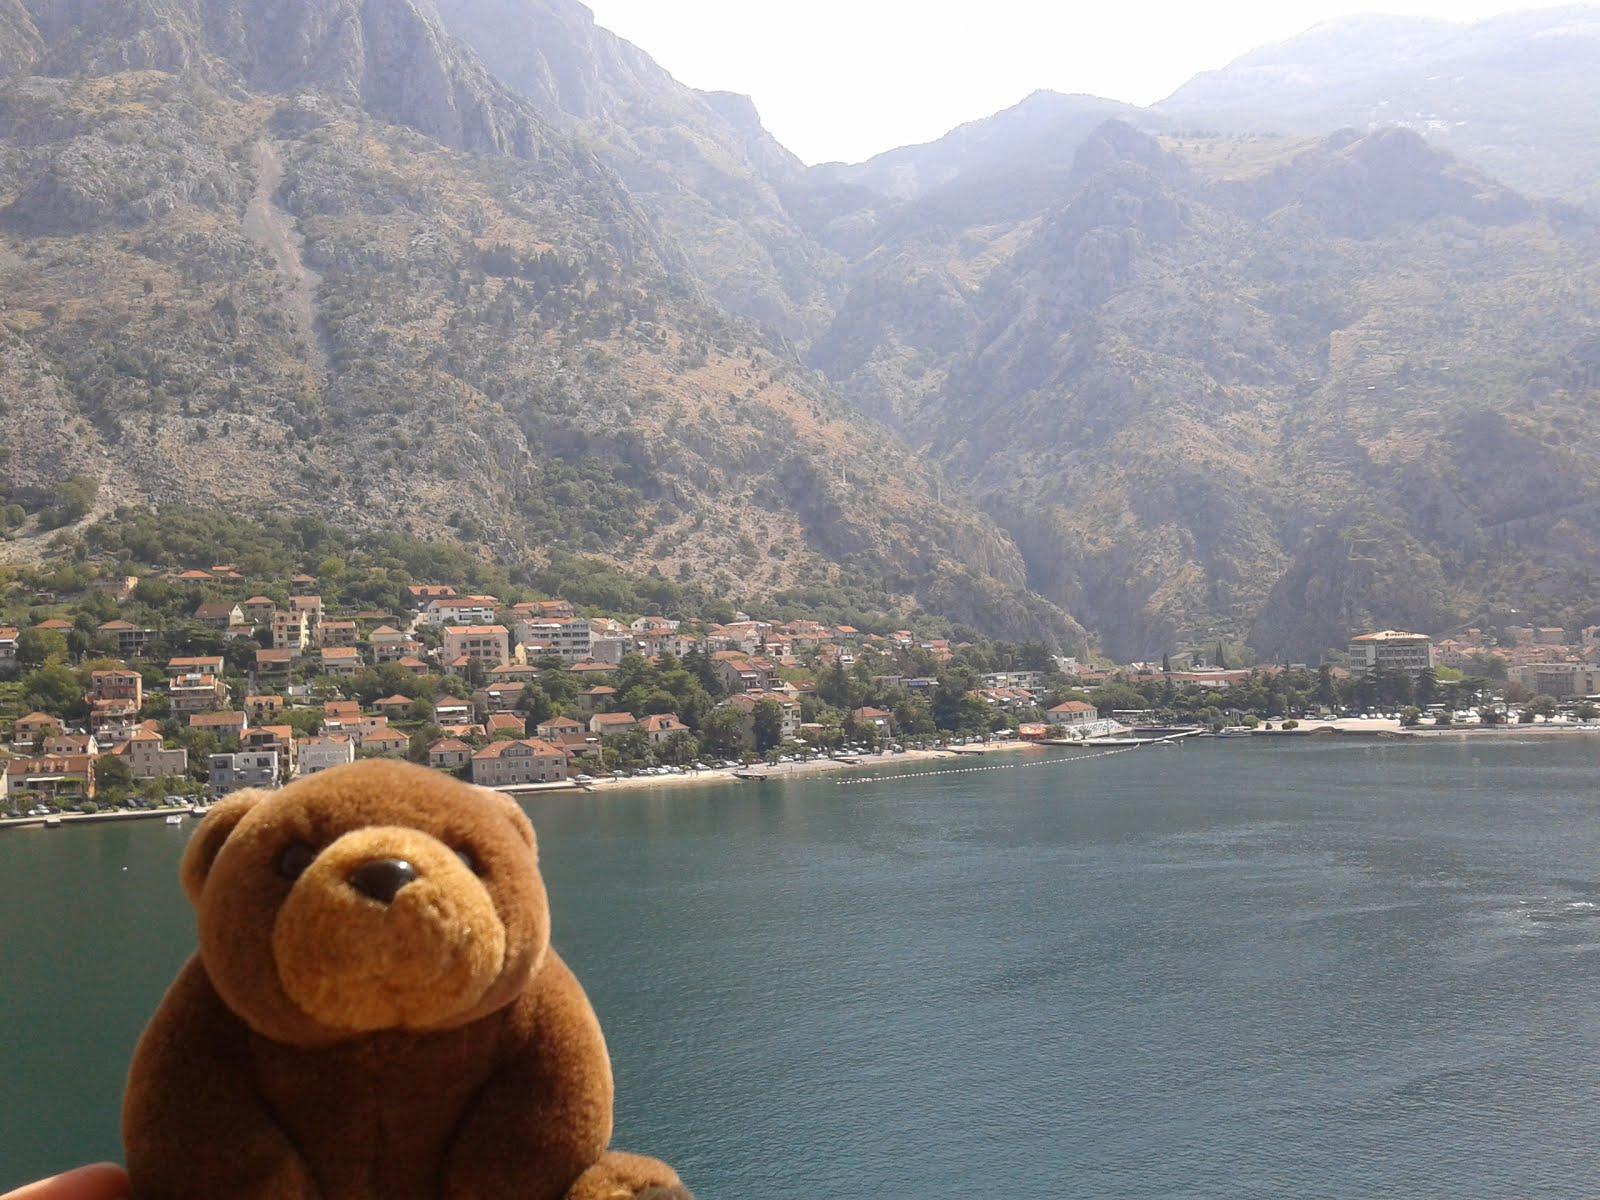 Teddy Bear in Kotor, Monte Negro